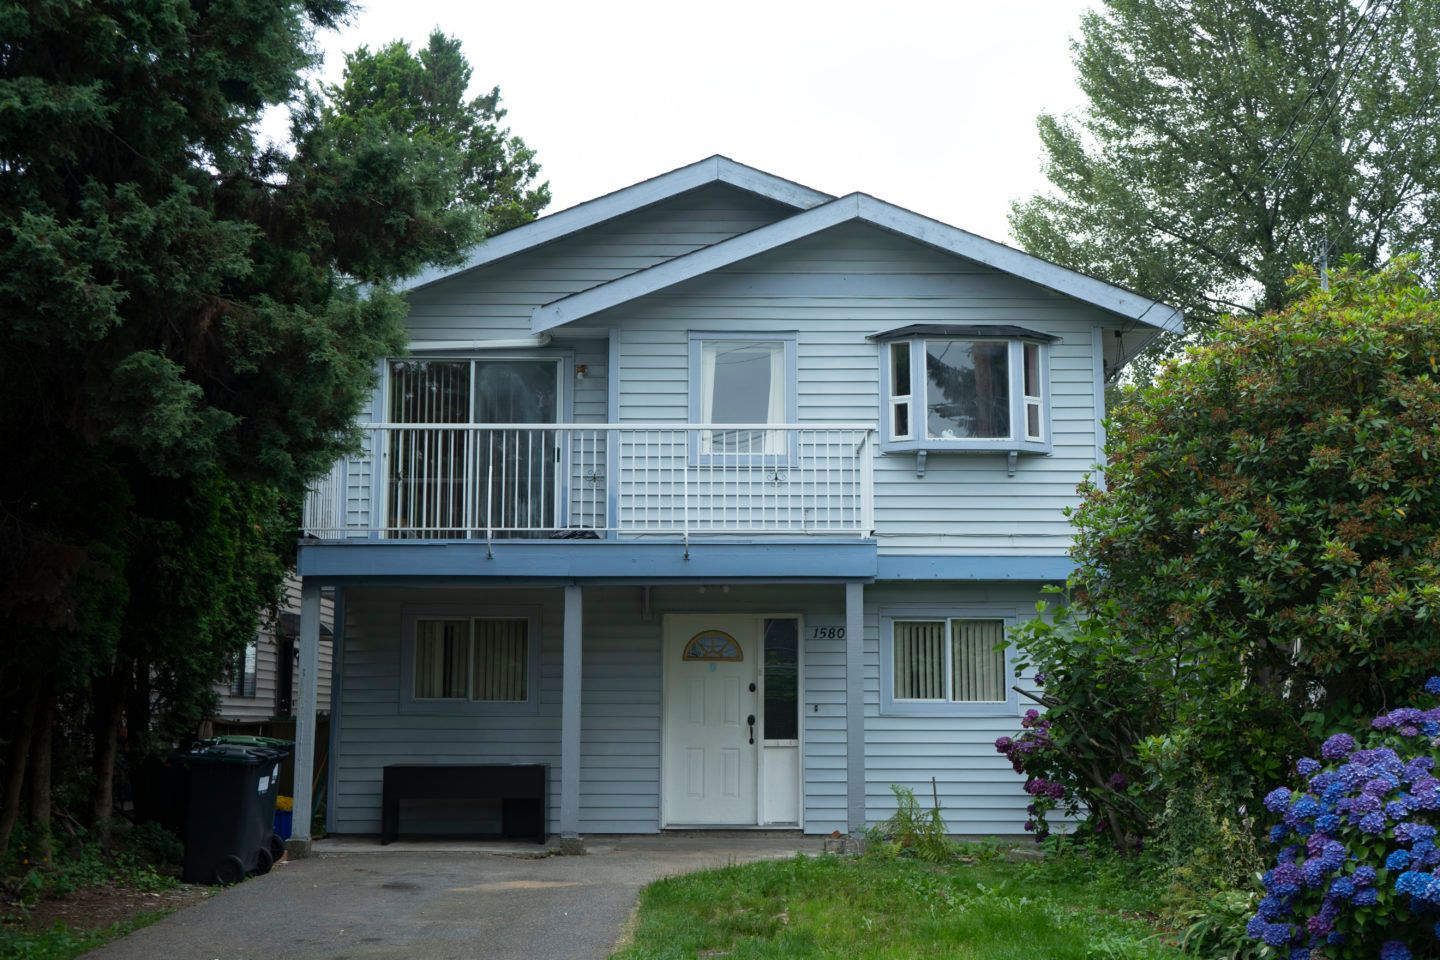 Main Photo: 1580 BOND STREET in : Lynnmour House for sale (North Vancouver)  : MLS®# R2226729